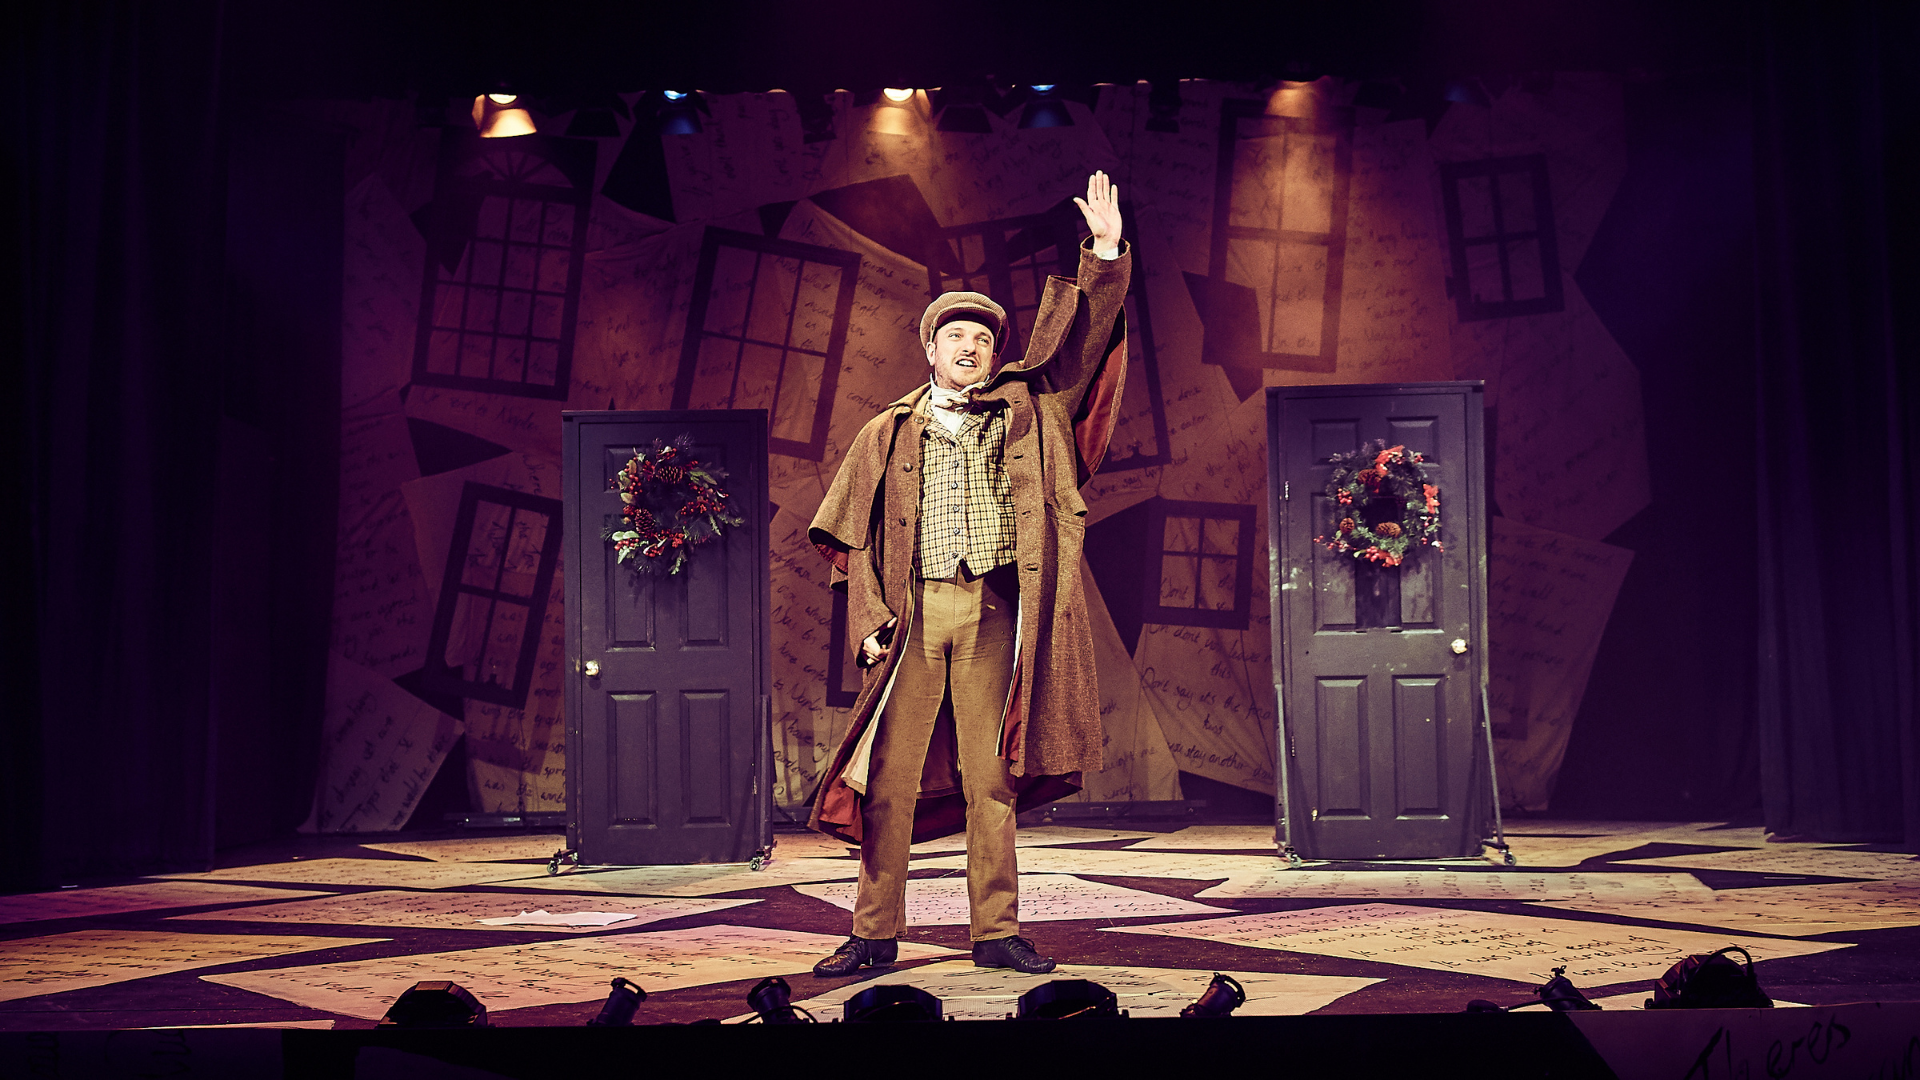 A Christmas Carol production shot: a character is stood in the centre waving at the audience. In the background, there are 2 doors decorated with Christmas wreaths